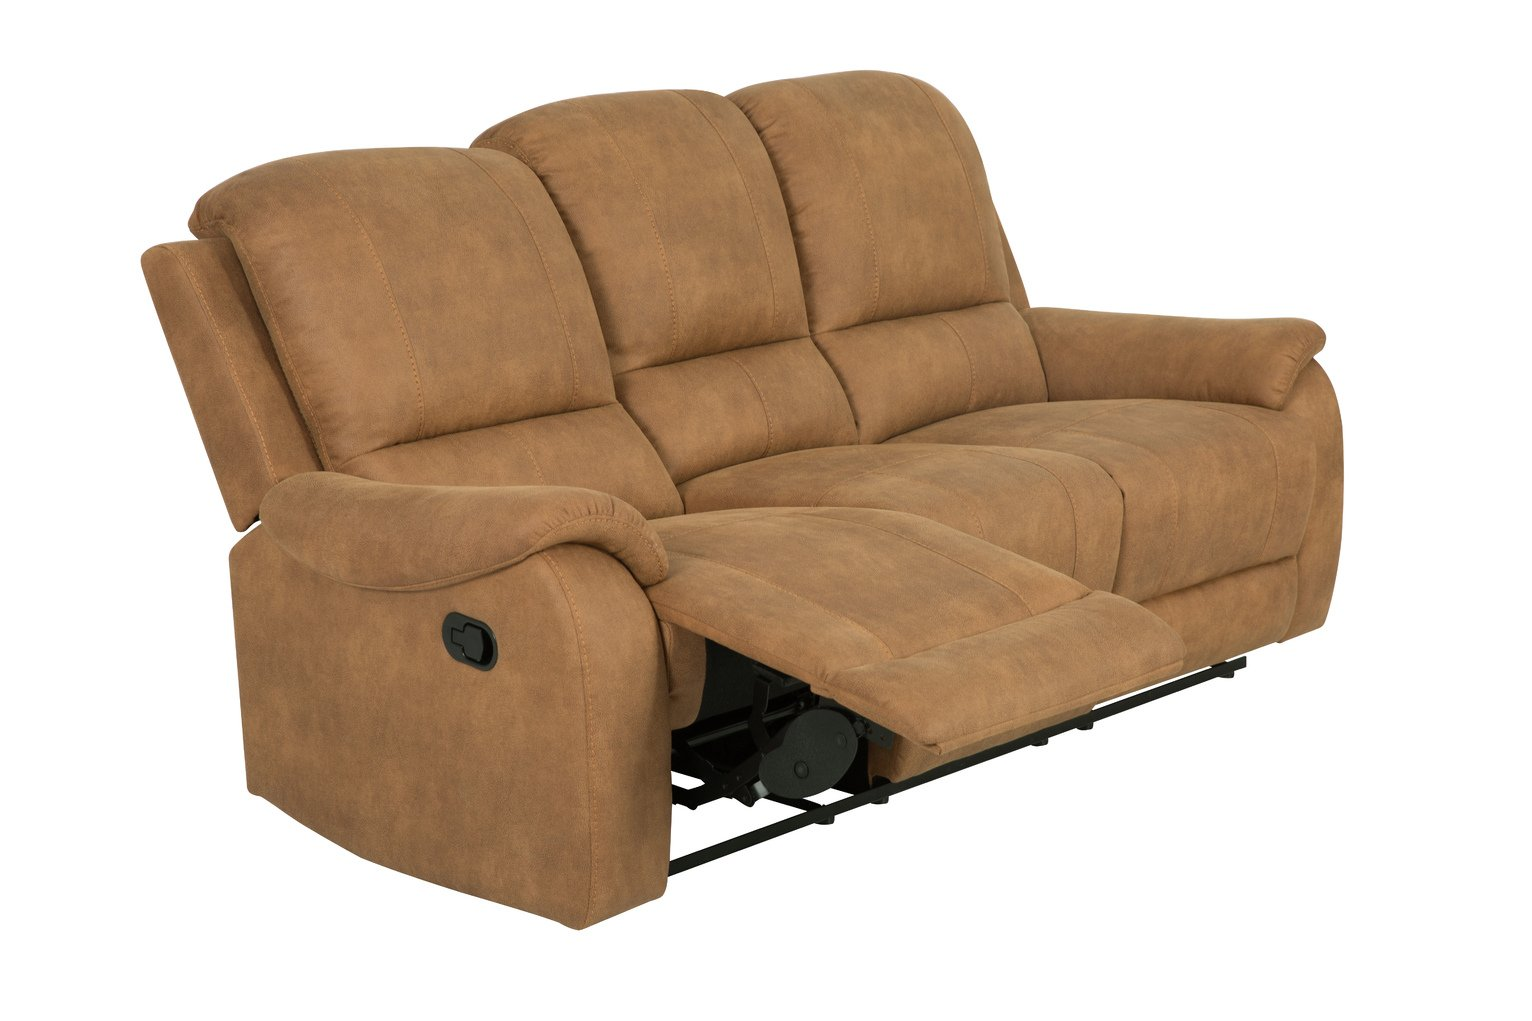 Argos Home Alfie 3 Seater Faux Leather Recliner Sofa - Brown